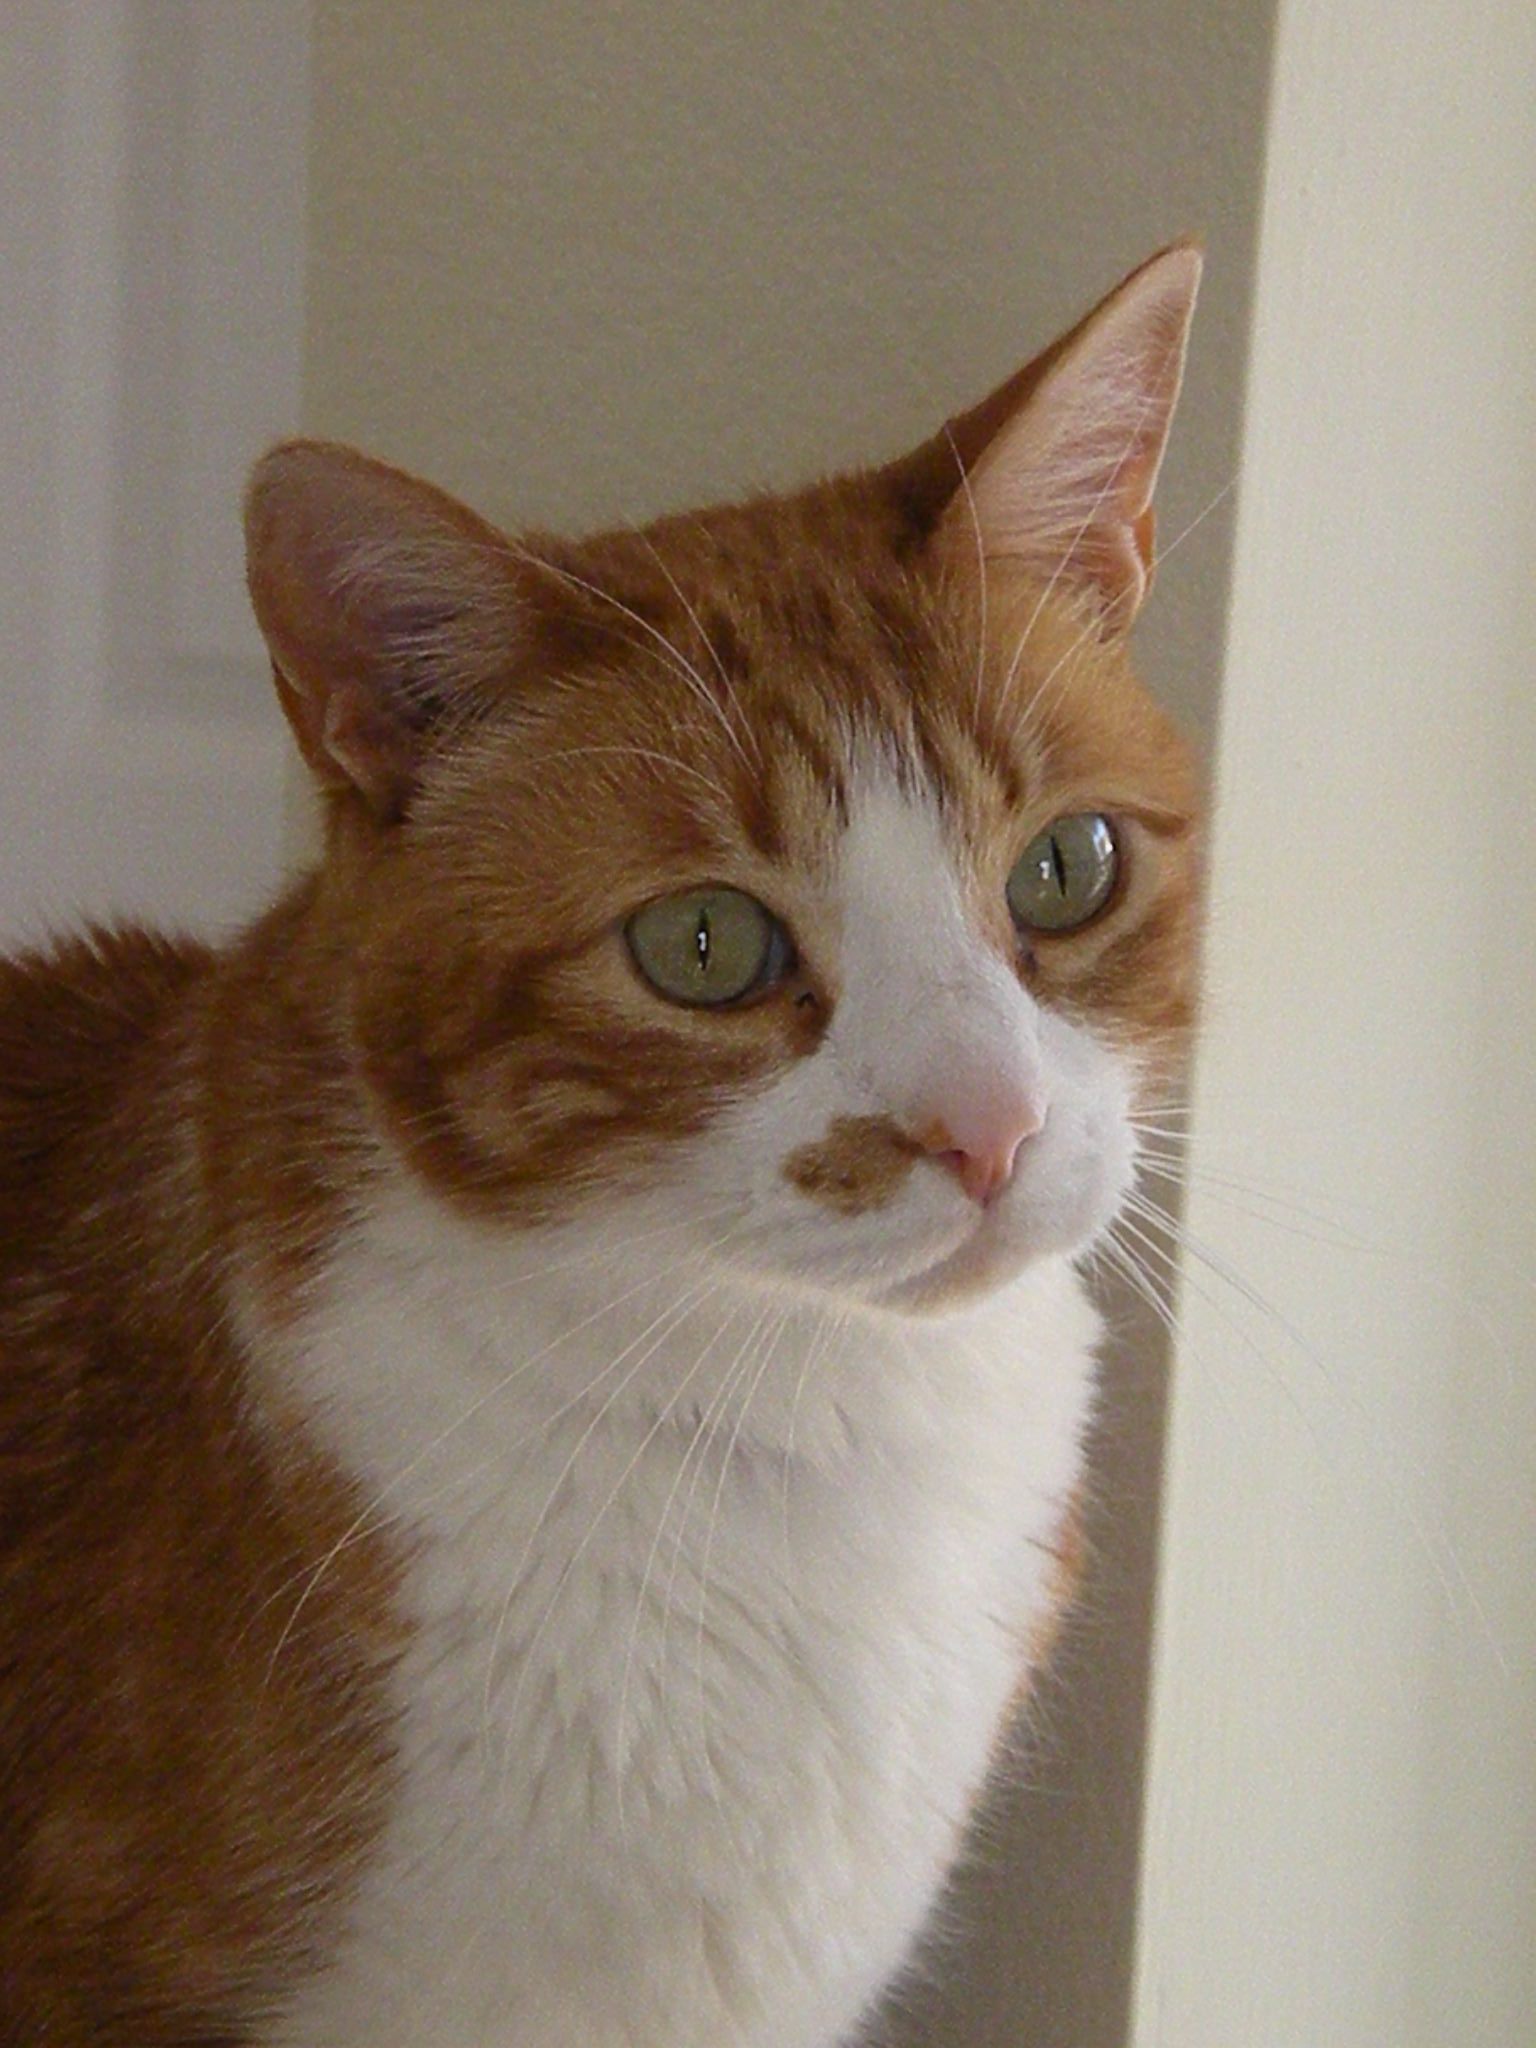 File:Orange tabby with green eyes.JPG - Wikimedia Commons